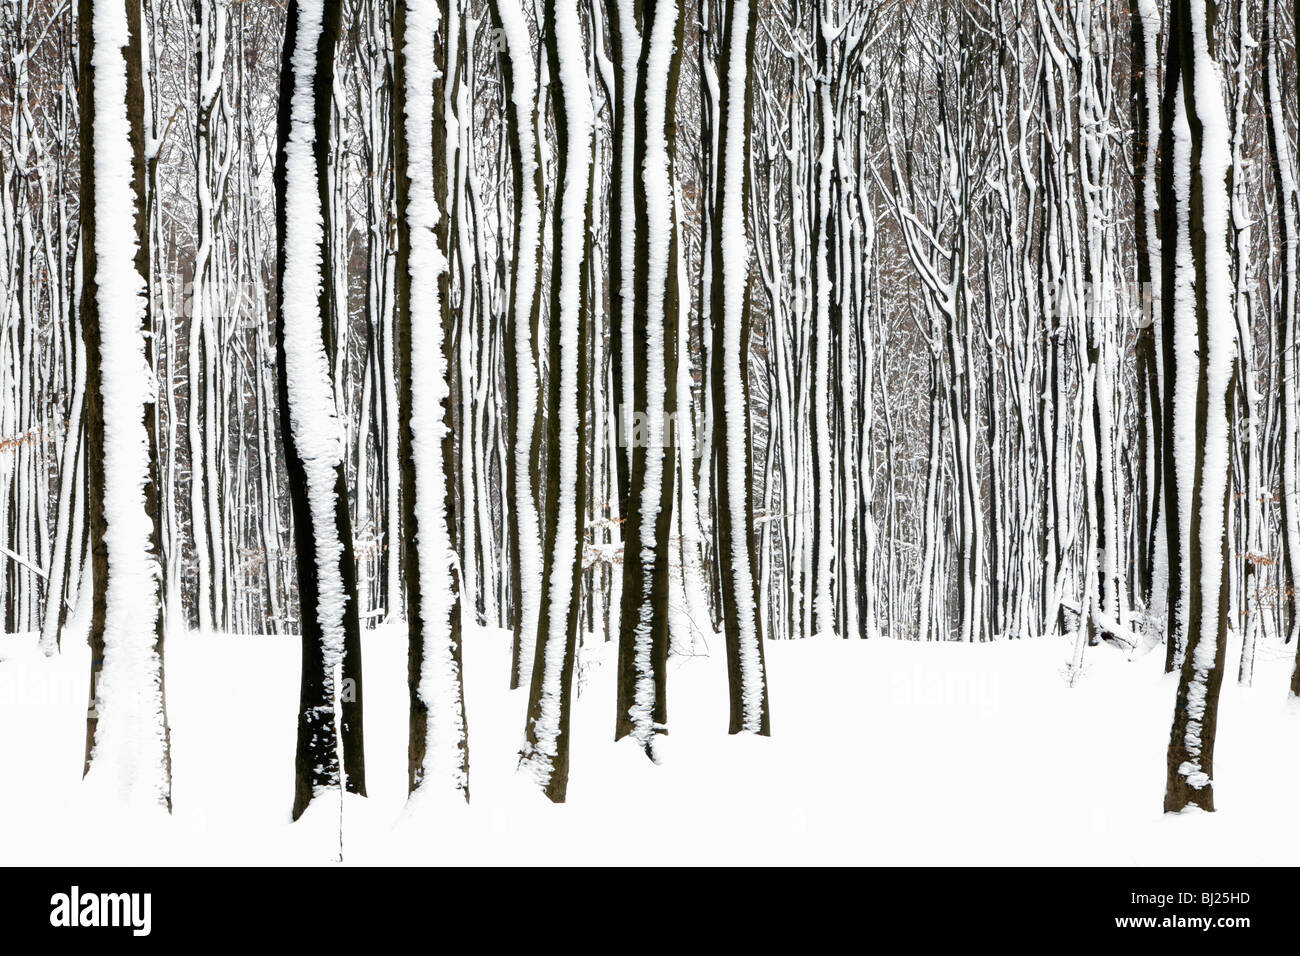 Beech tree stems, Fagus sylvatica, in woodland, covered in snow, Germany - Stock Image